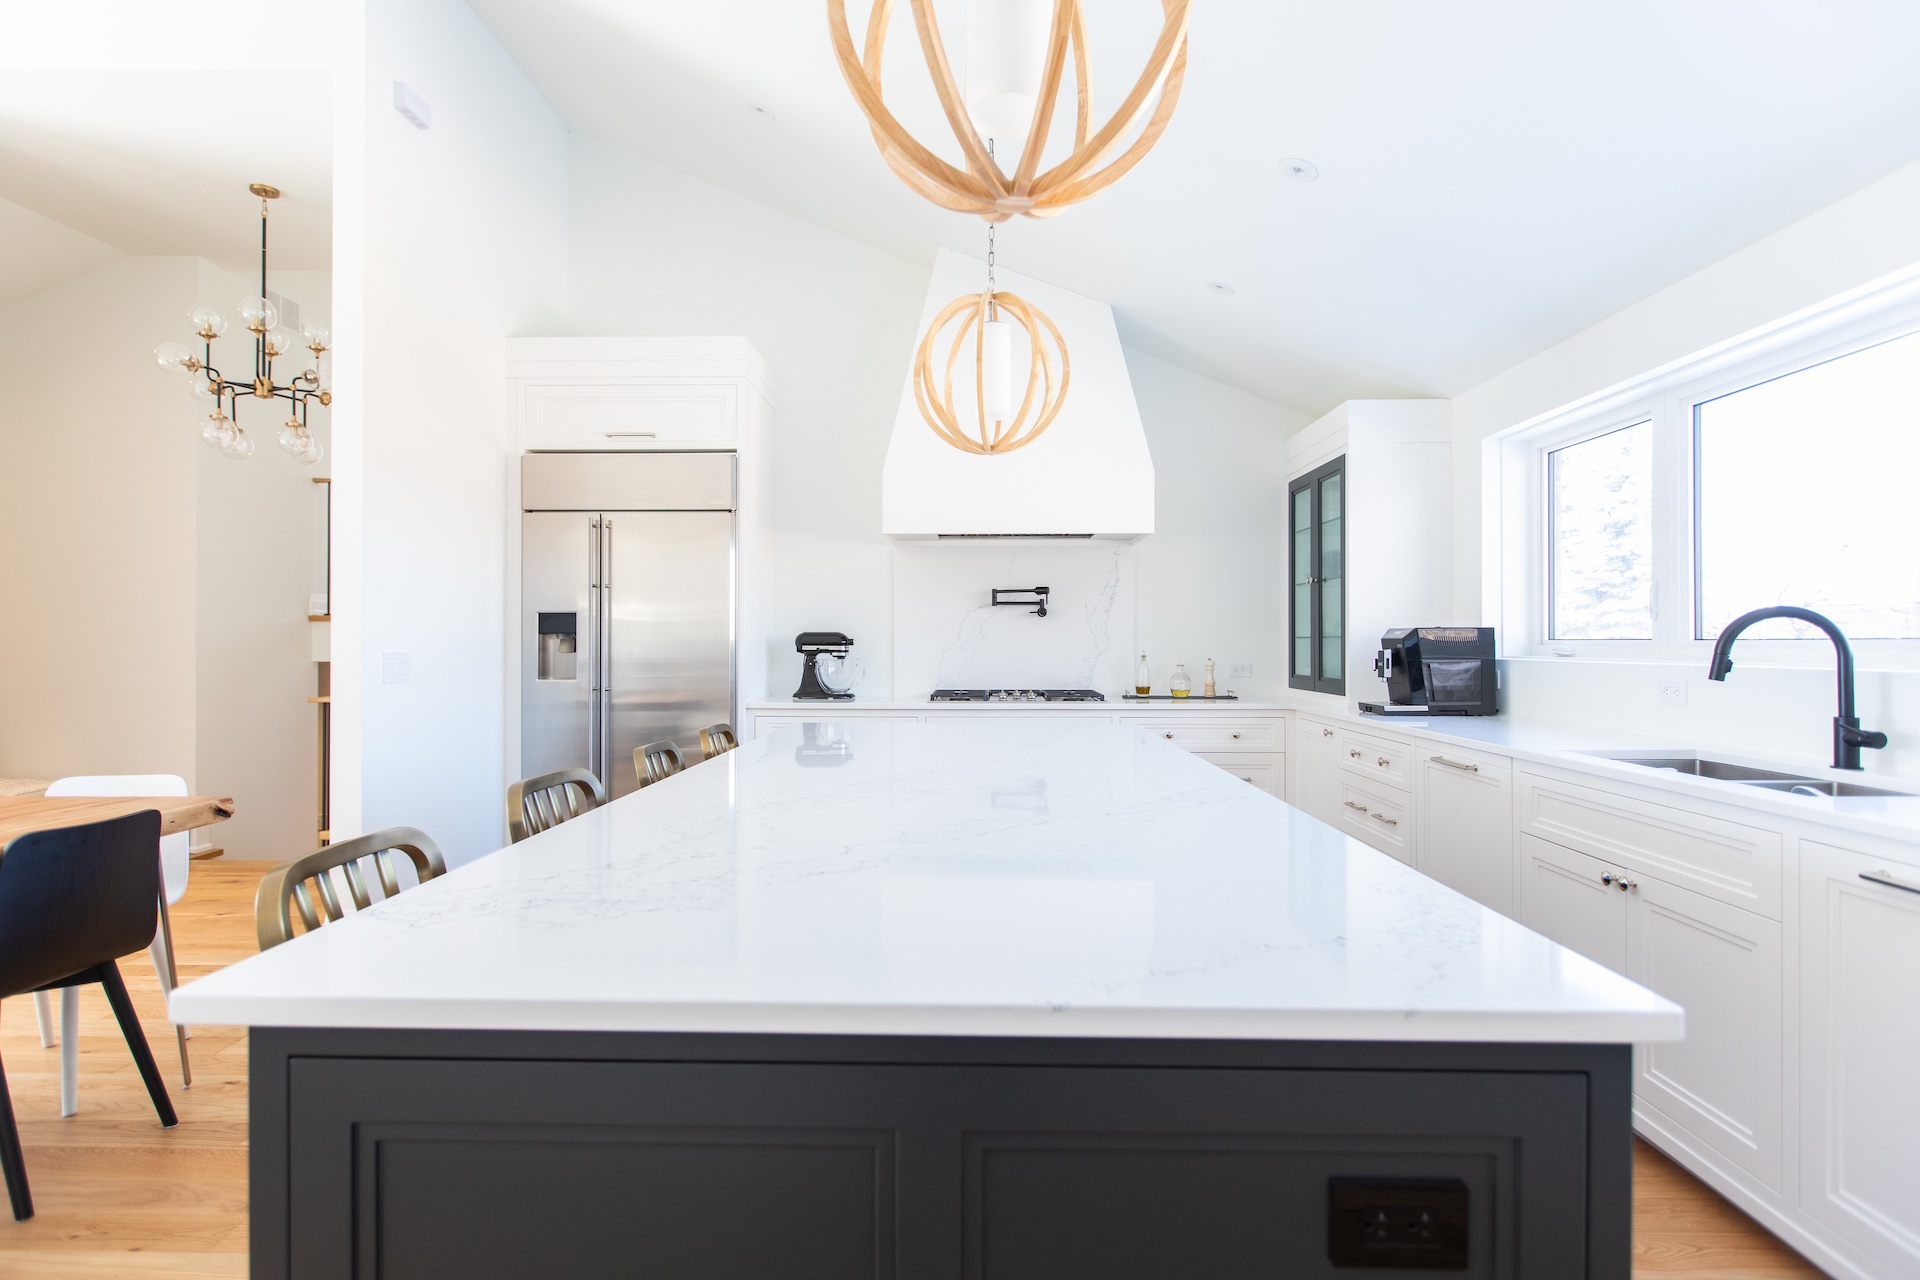 Kitchen island with white counter